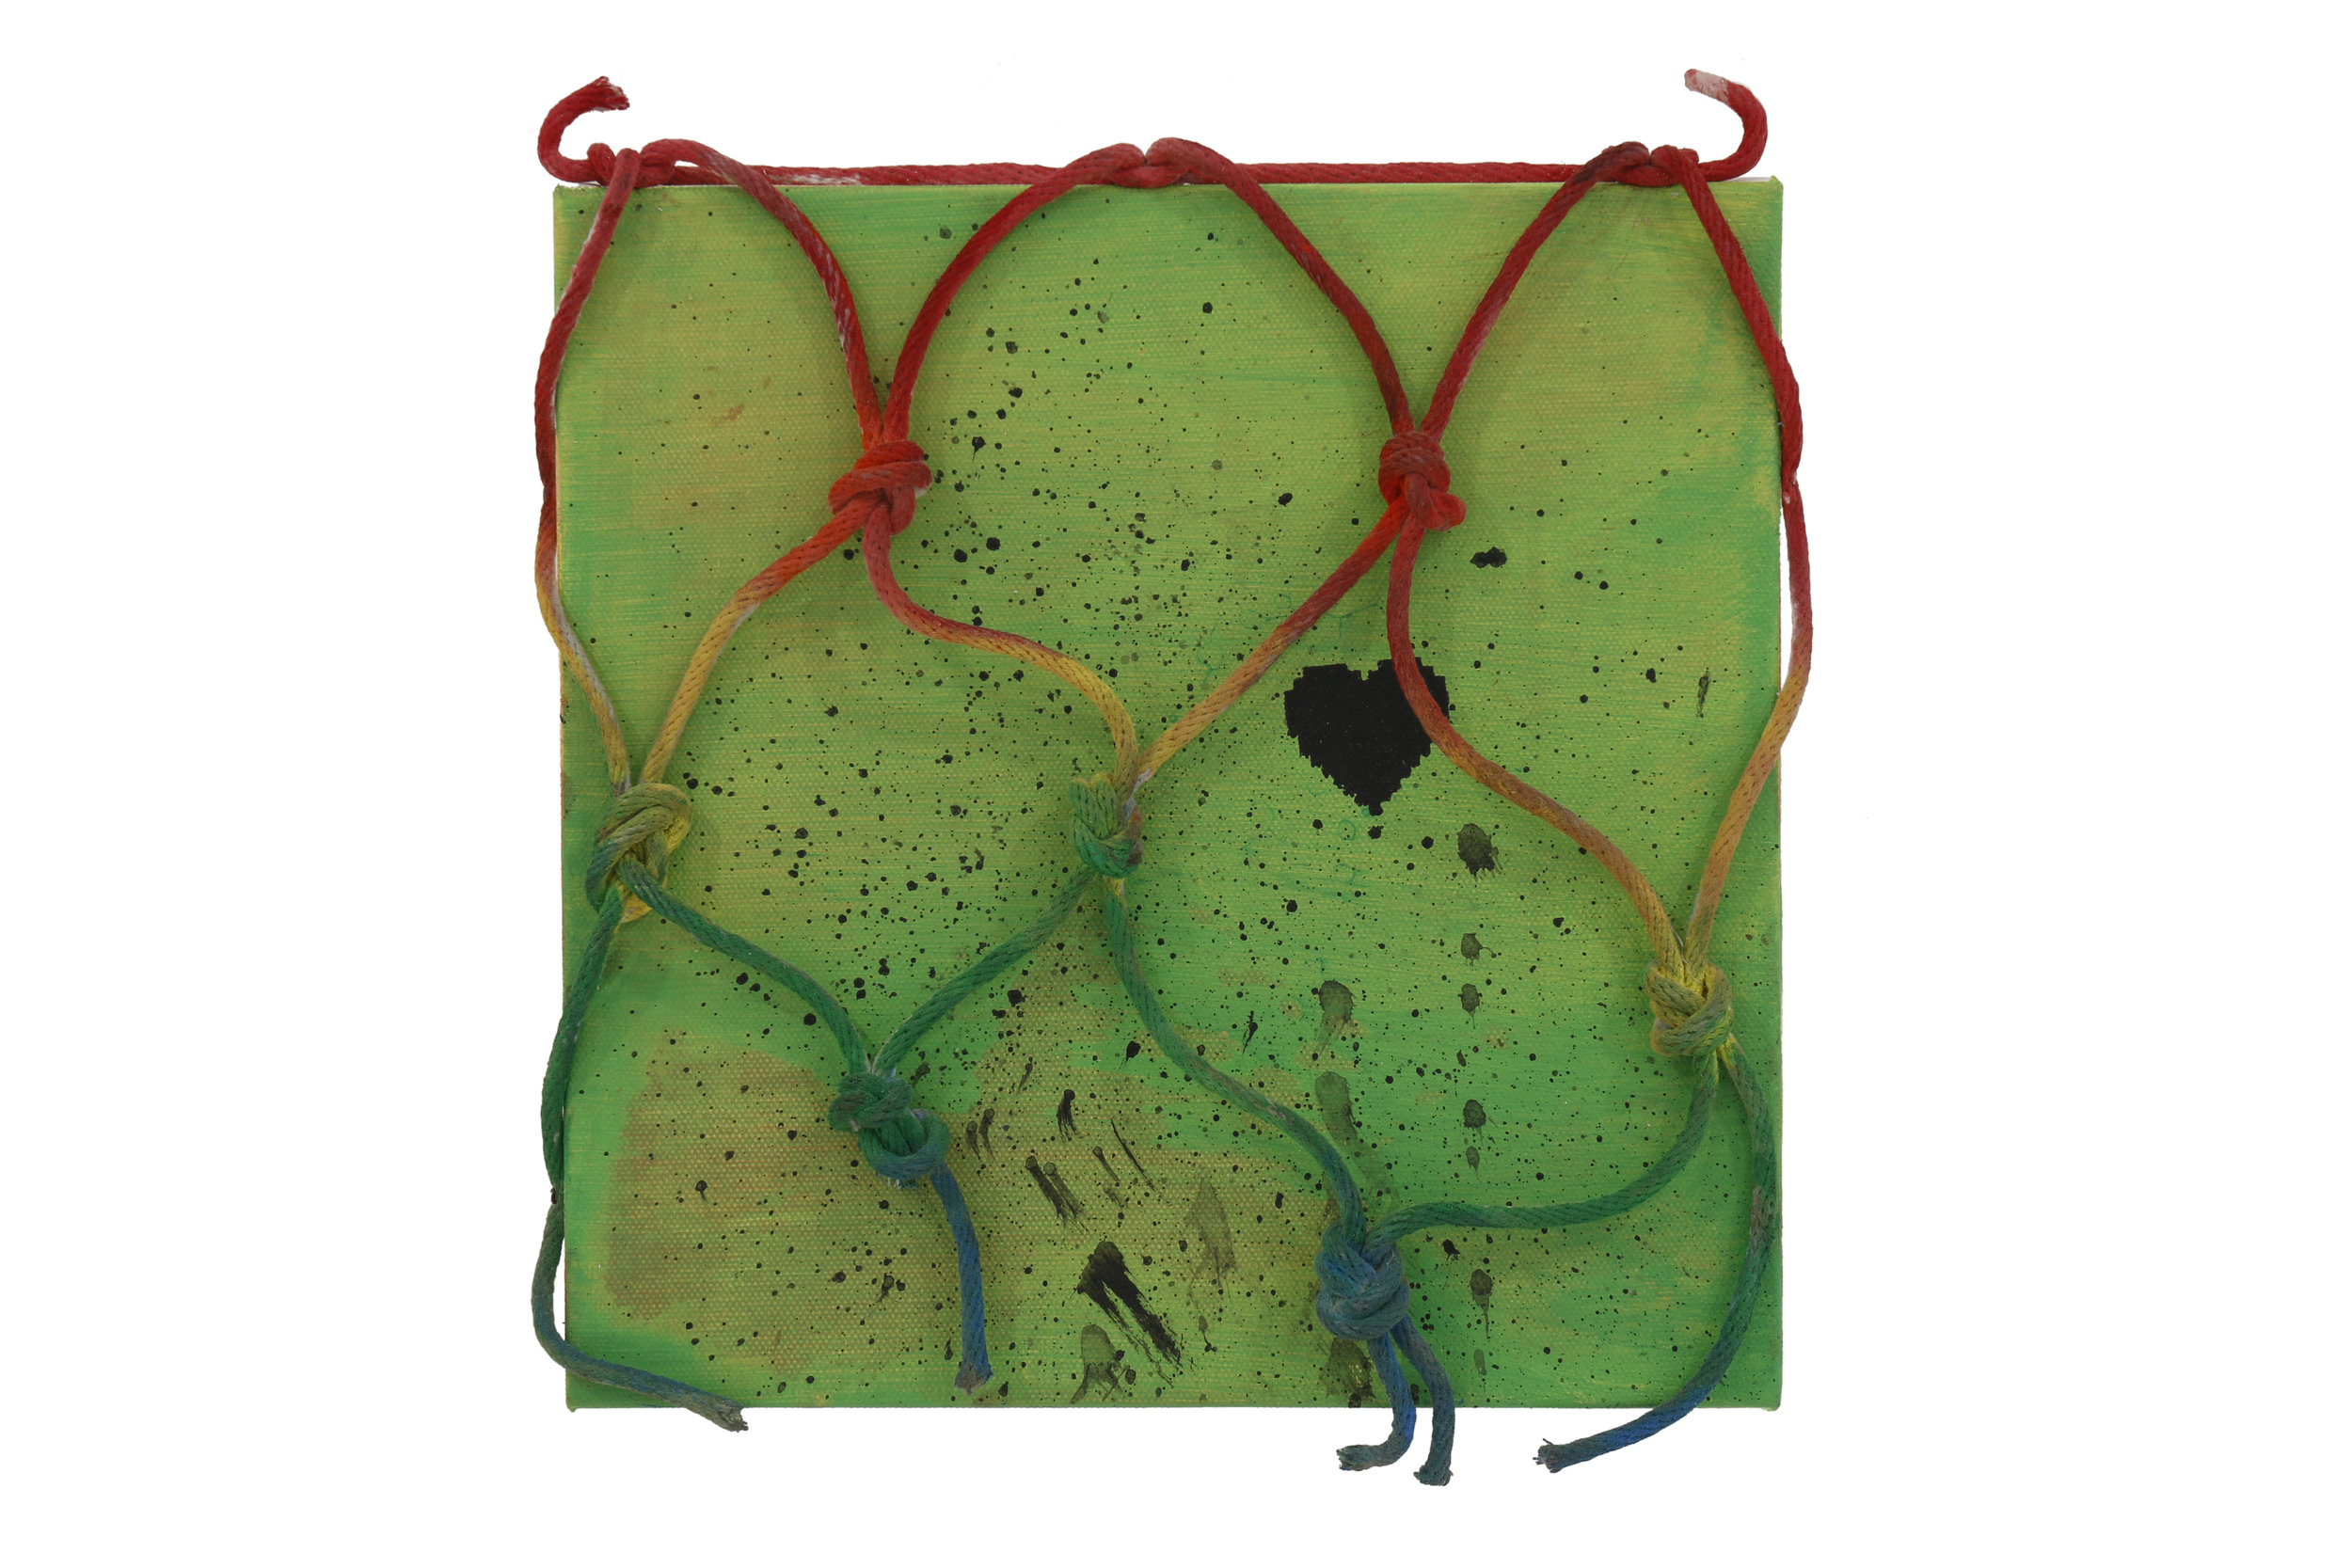 Wendy White    Provincetown (Green Heart)   Acrylic on canvas, rope, Provincetown sea water  10 x 10 in (25.4 x 25.4 cm)